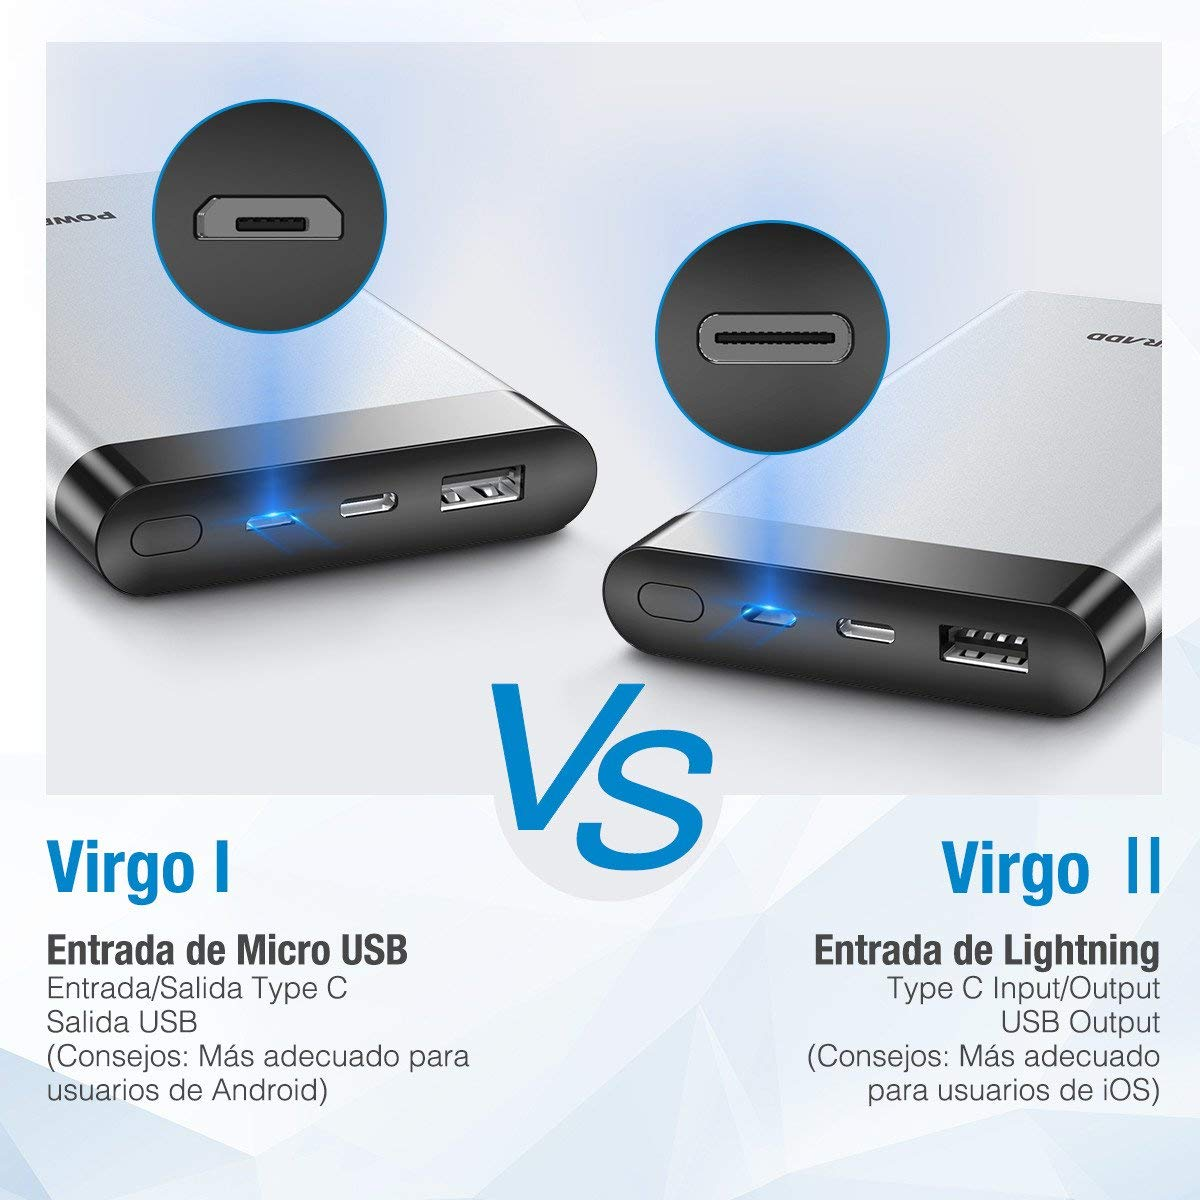 POWERADD VirgoⅡCargador portátil, Power Bank de 10000mAh con Pantalla LED Digital Entrada de Type-C y Lightning para iPhone, iPad, iPod, Samsung, Nintendo, Huawei (Cable USB Tipo C y Lightning Cable Incluidos)-Argentado